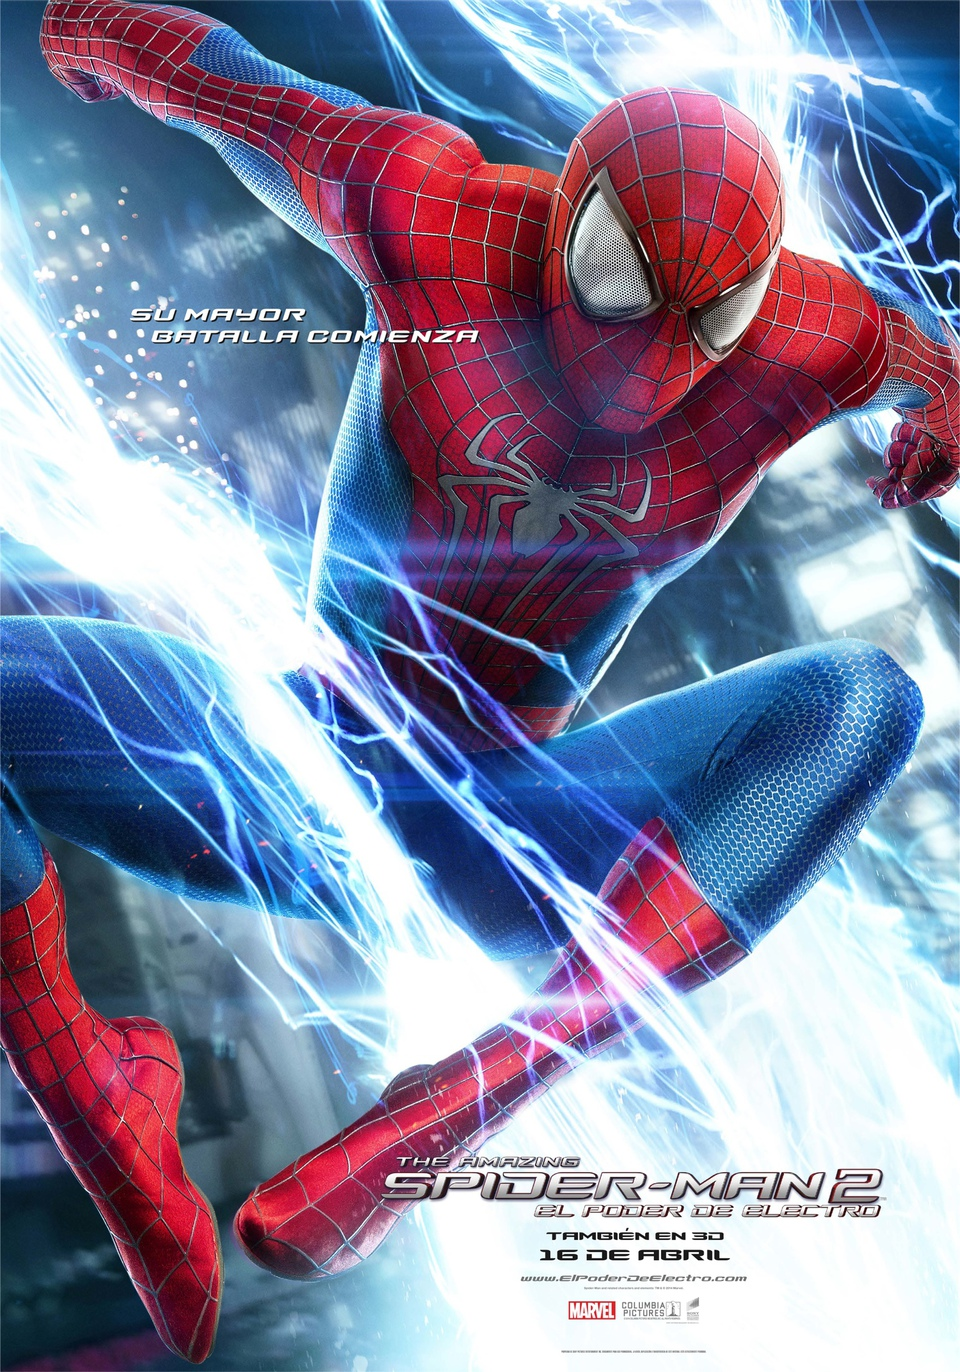 THE AMAZING SPIDER-MAN 2. EL PODER DE ELECTRO